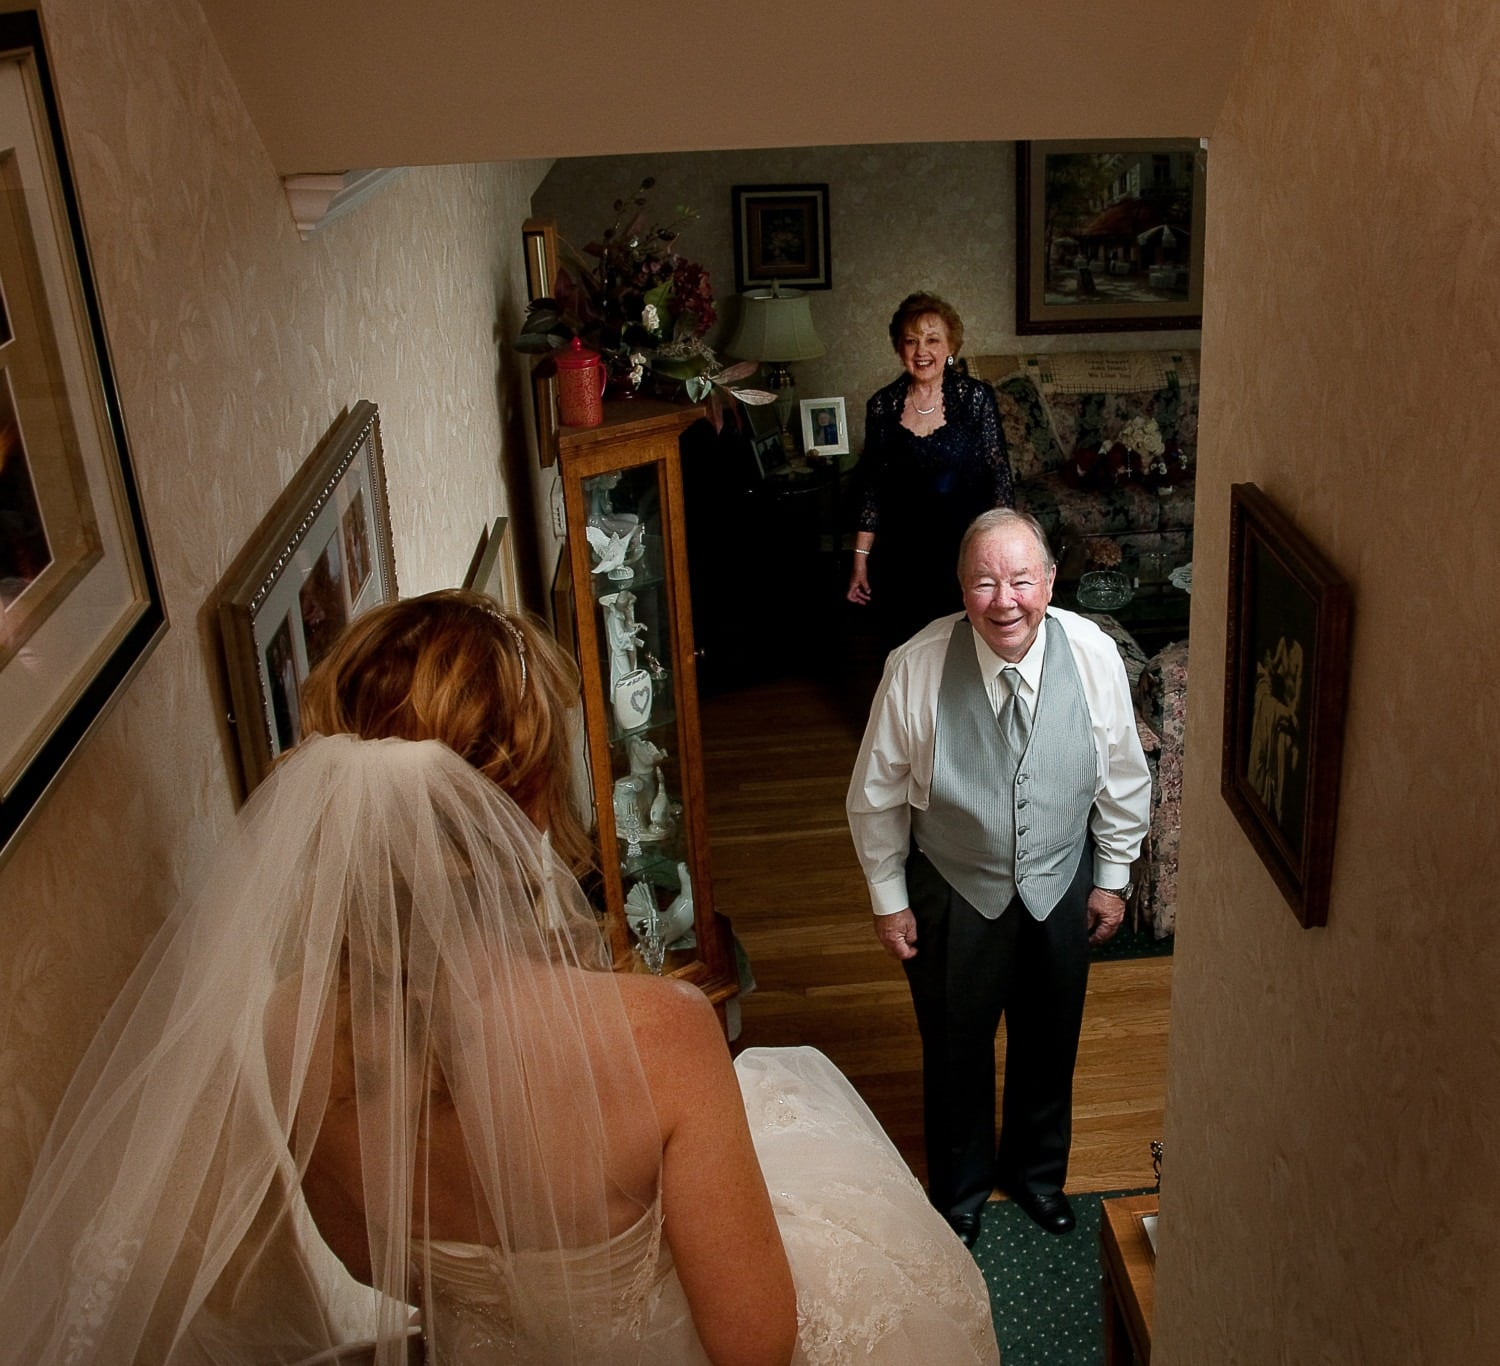 the bride and father